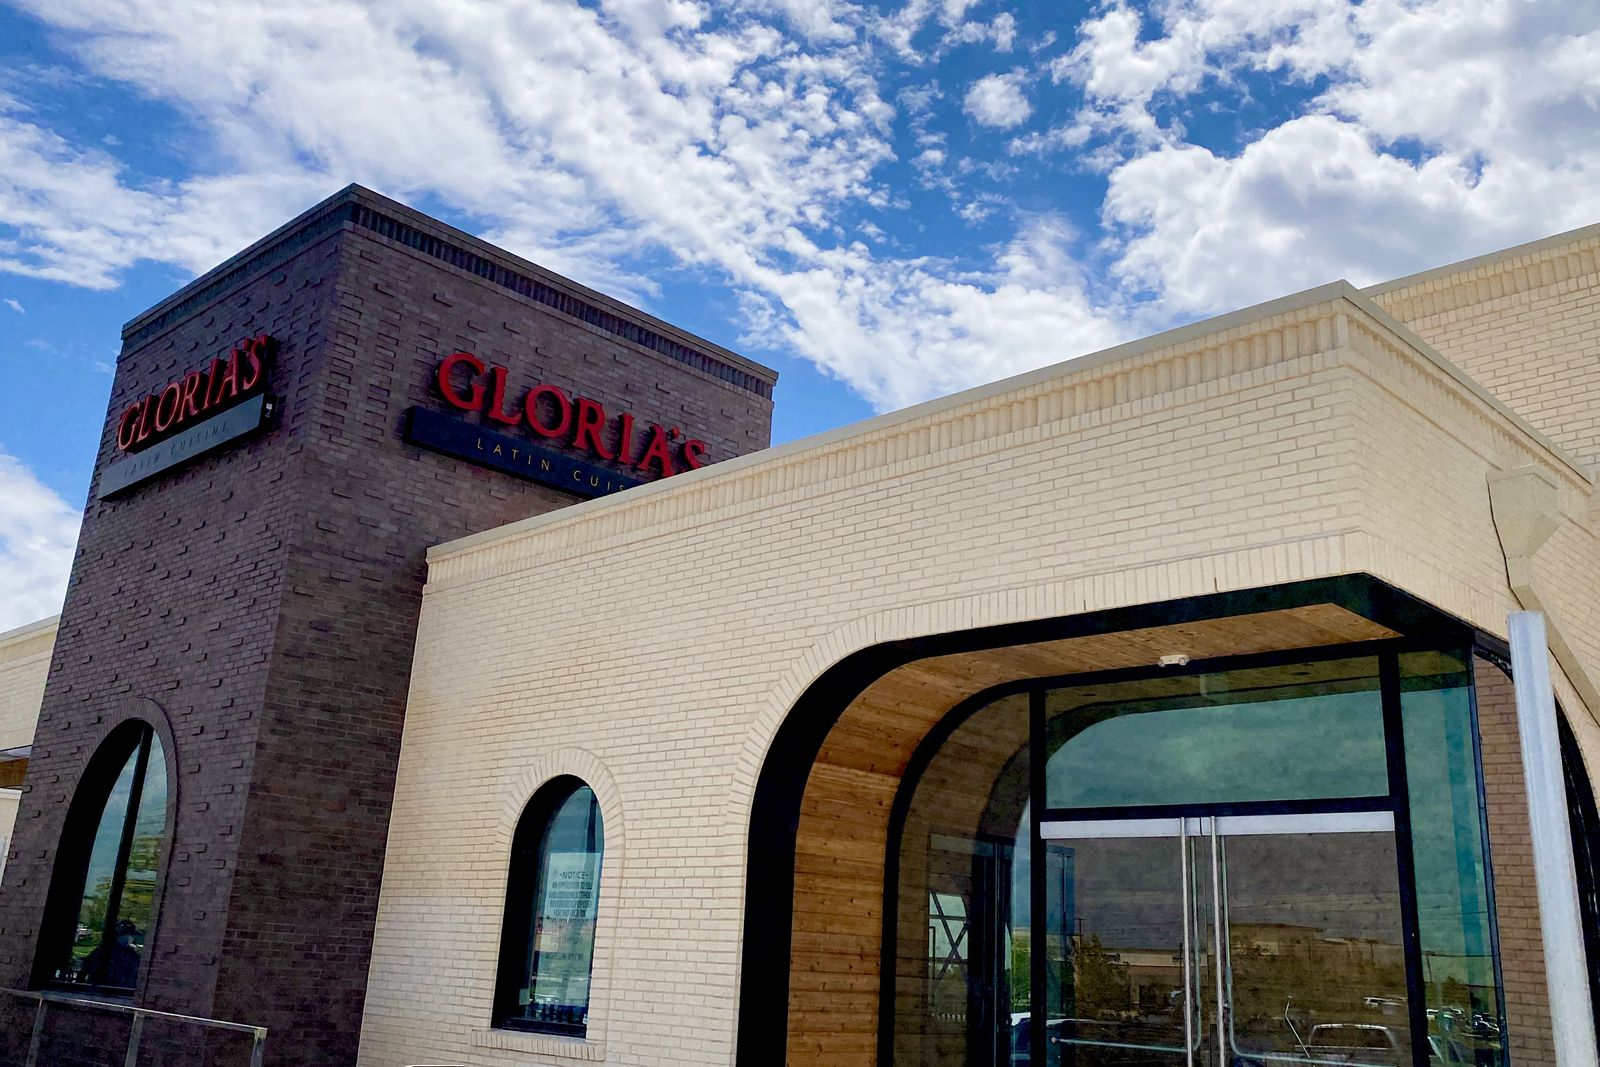 Gloria's Latin Cuisine Makes Its Highly Anticipated McKinney, Texas Debut